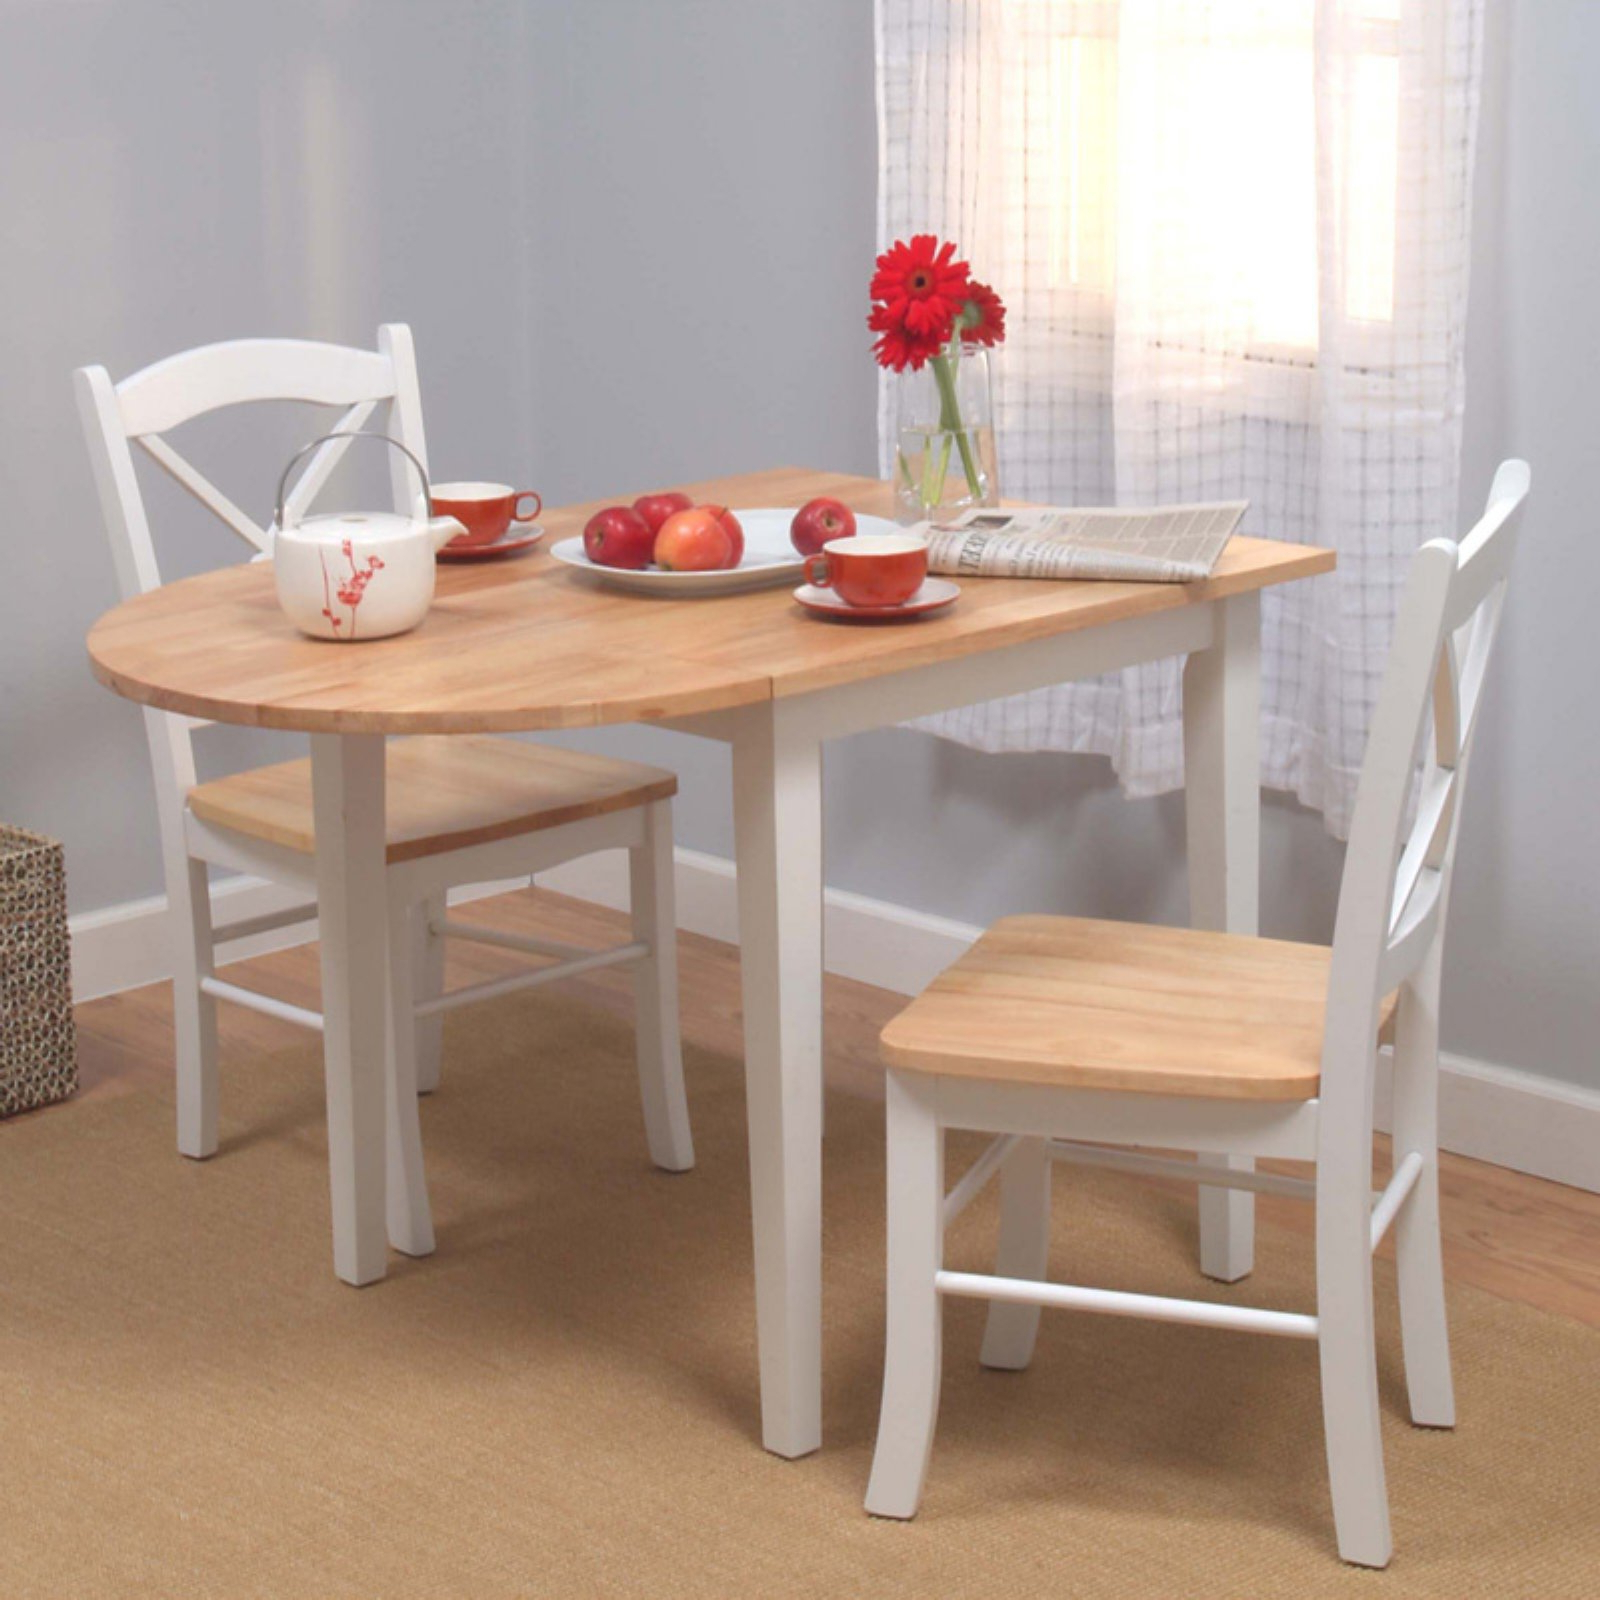 2018 3 Pieces Dining Tables And Chair Set Regarding Tiffany 3 Piece Dining Table Set – Walmart (View 2 of 30)